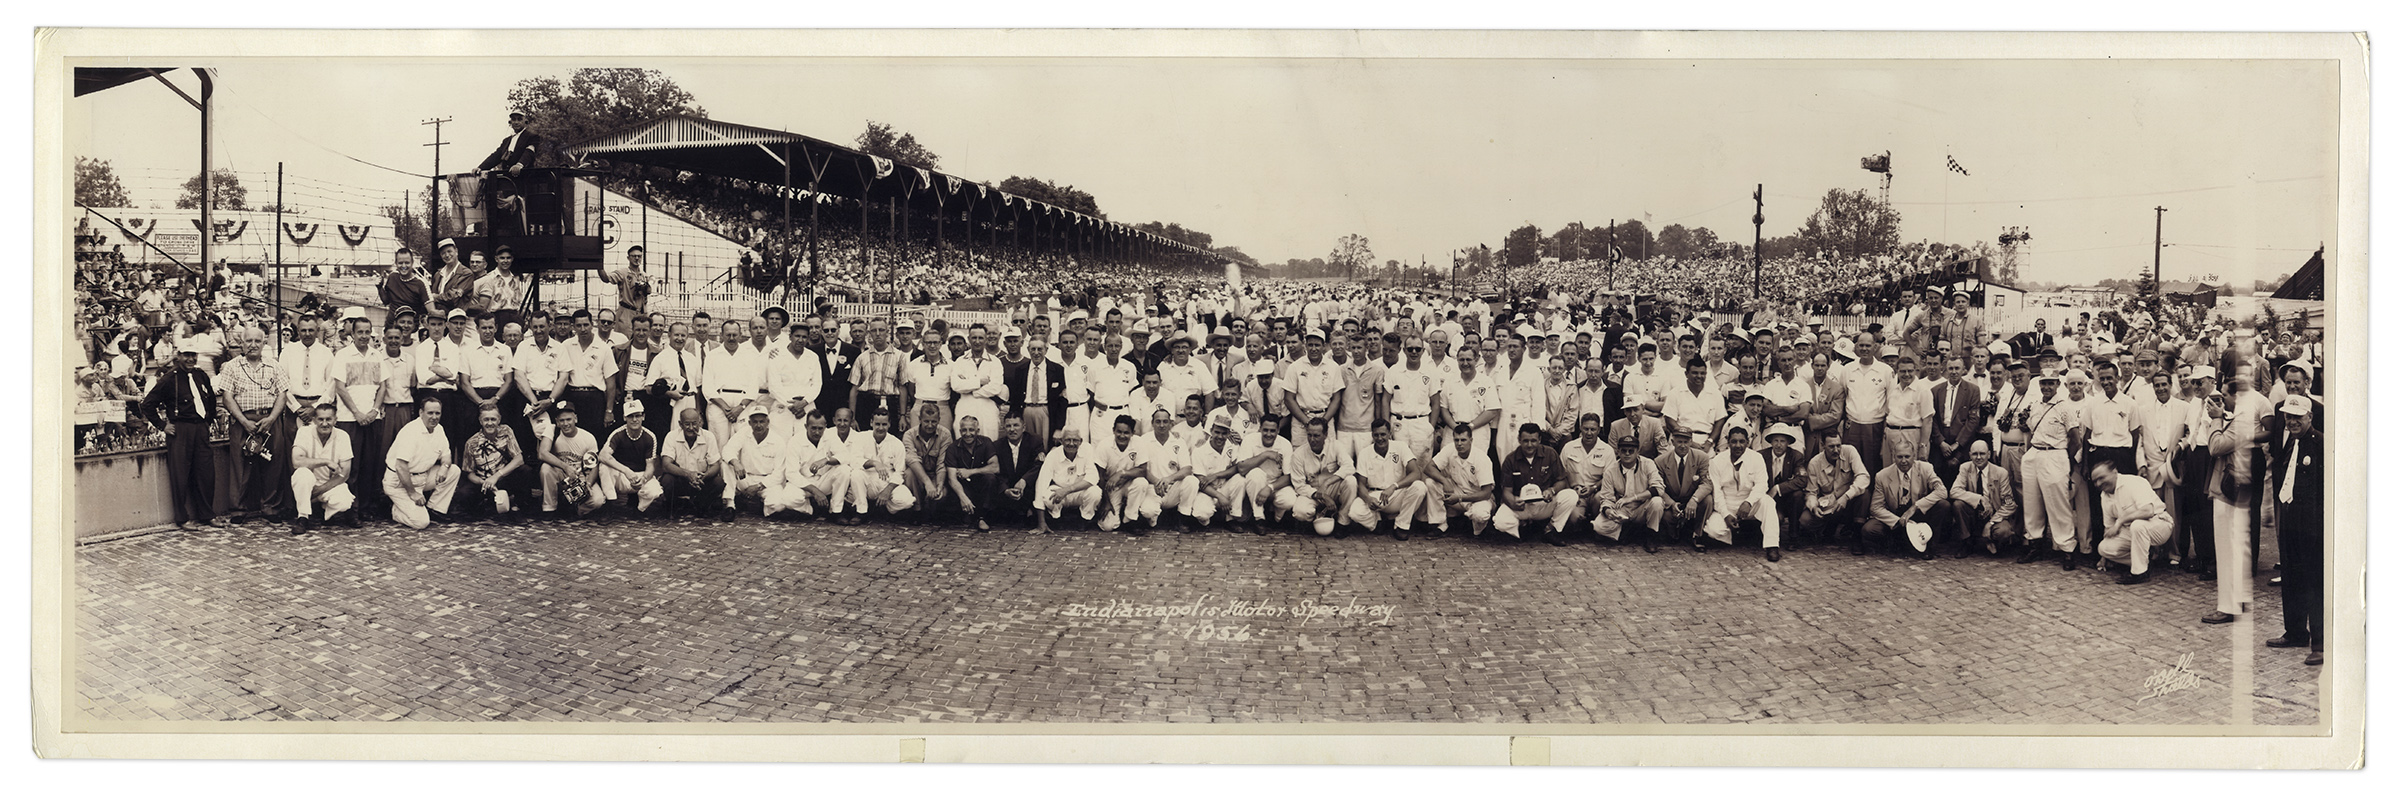 1956 Indy 500 Pre Race Panoramic Photo